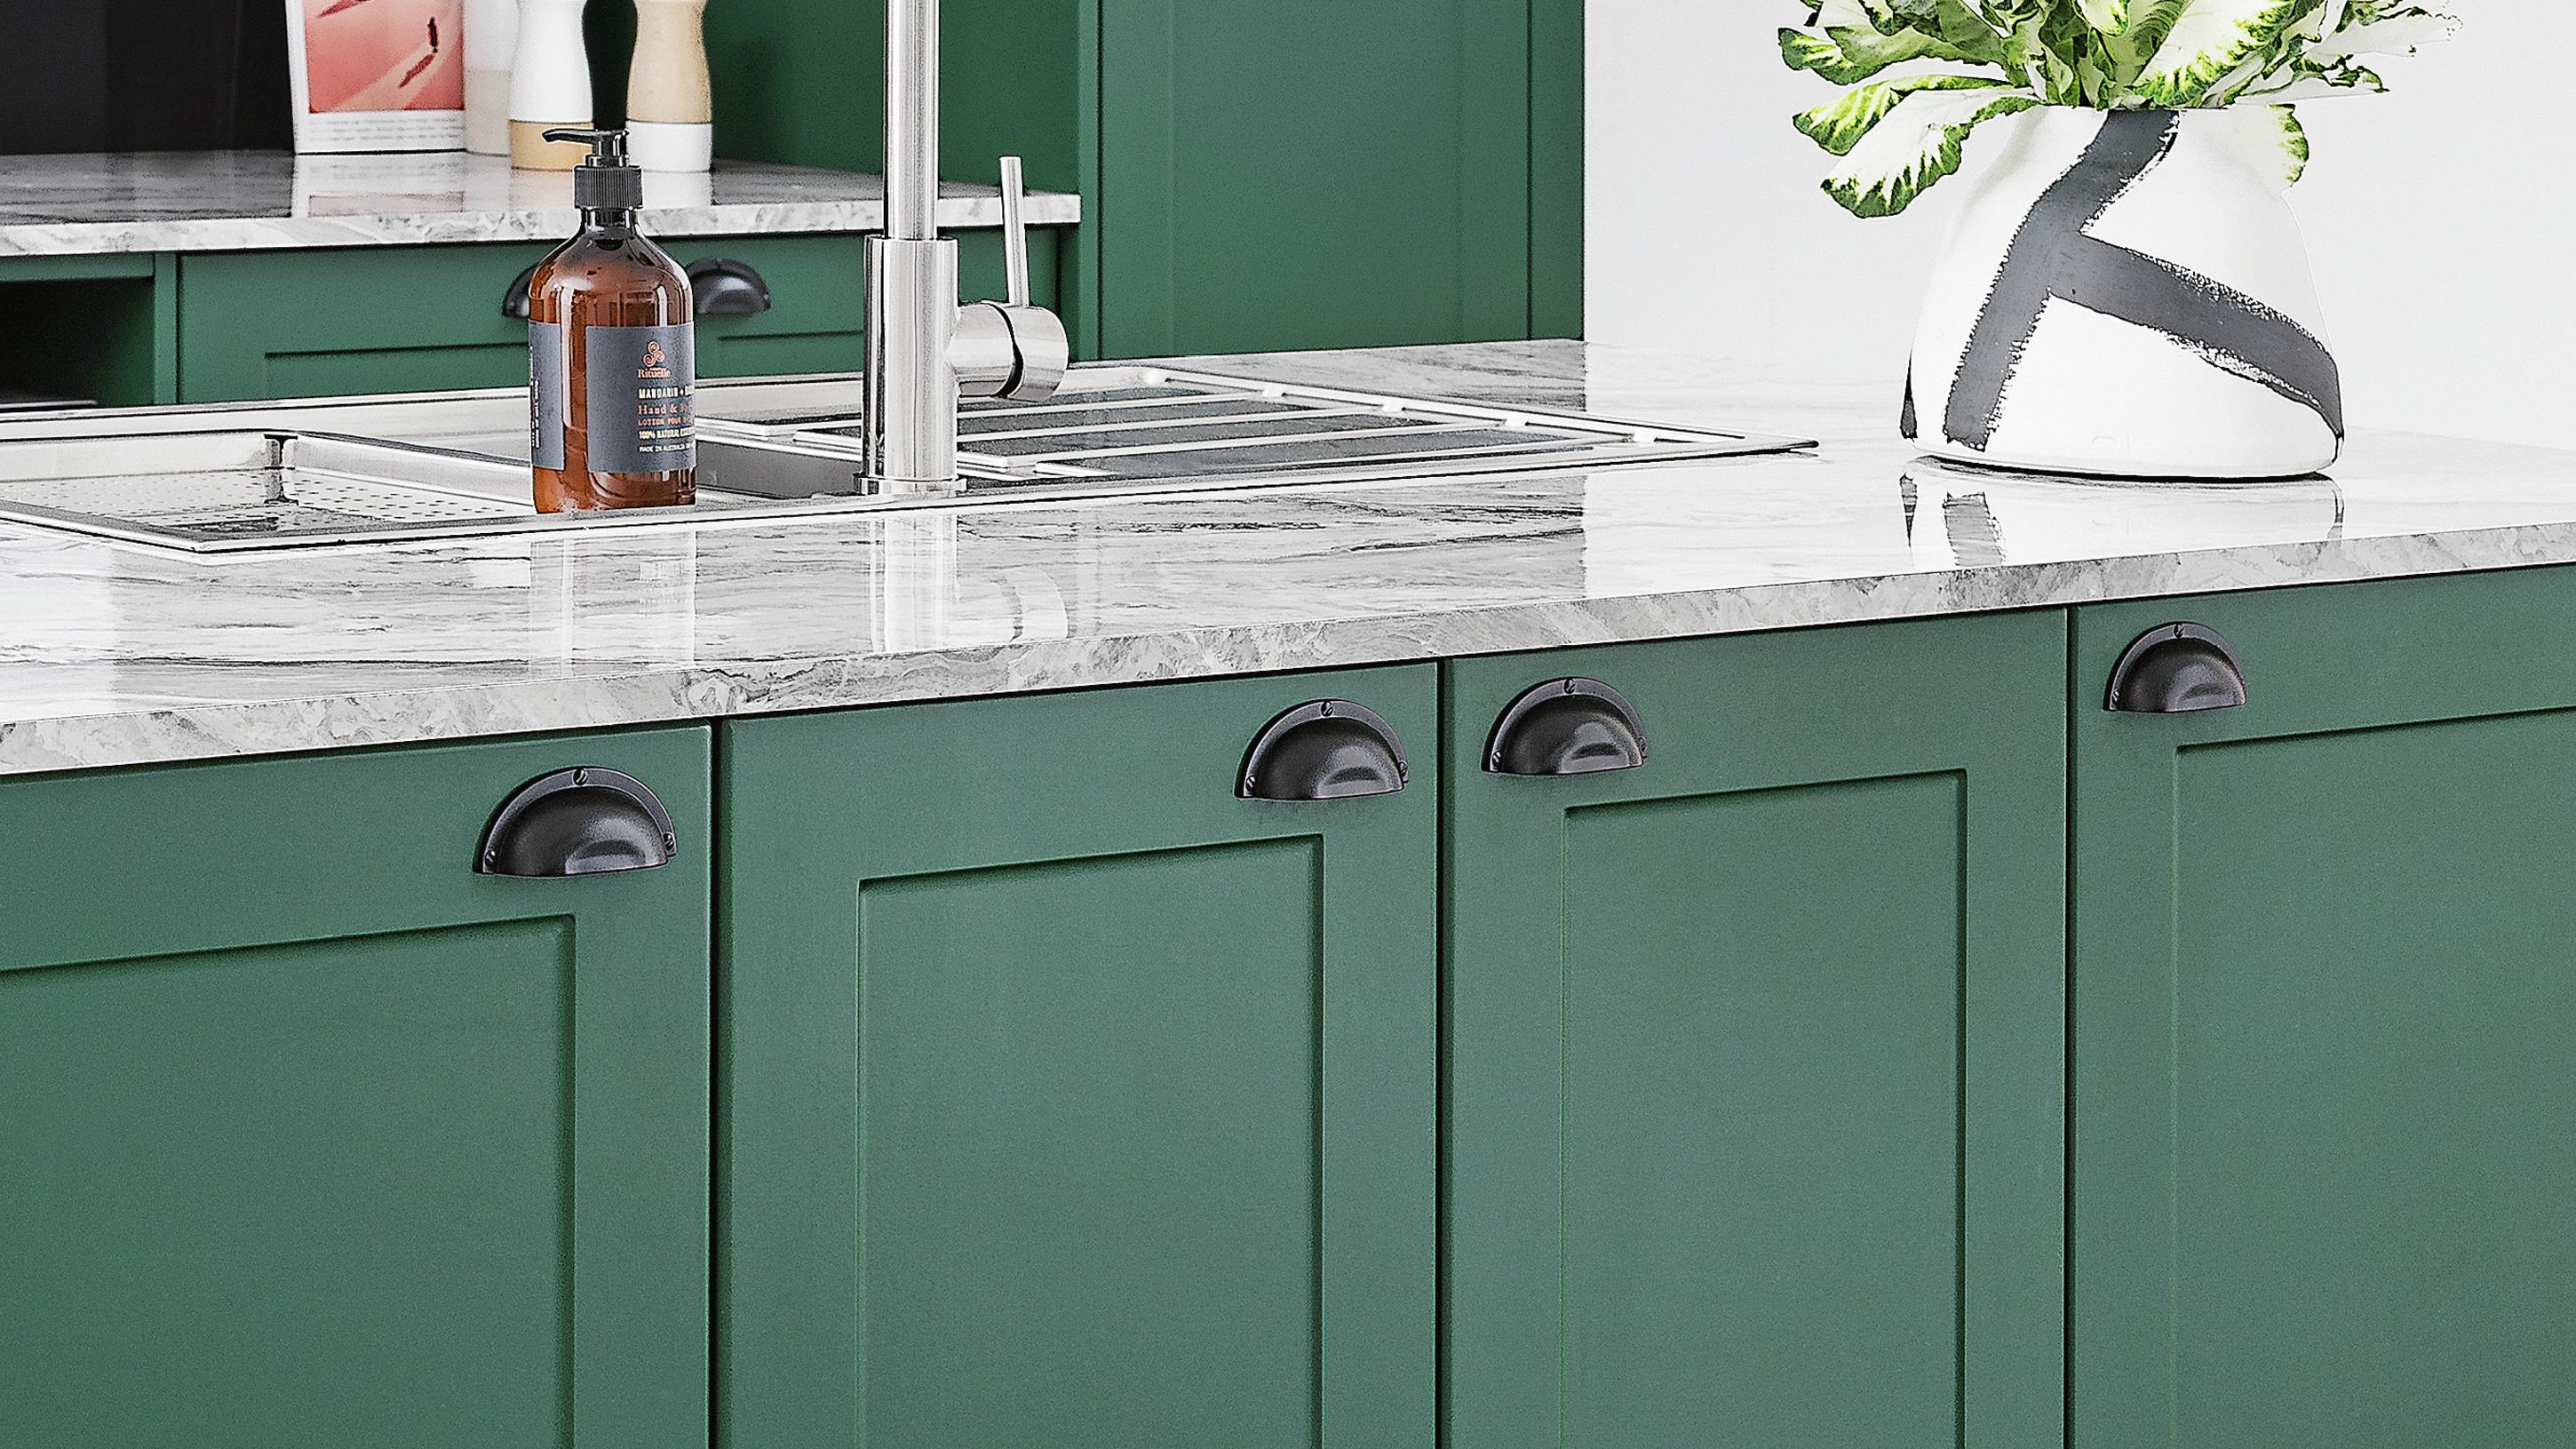 Kitchen island bench featuring marble benchtop, green cabinetry with black handles, and sink.